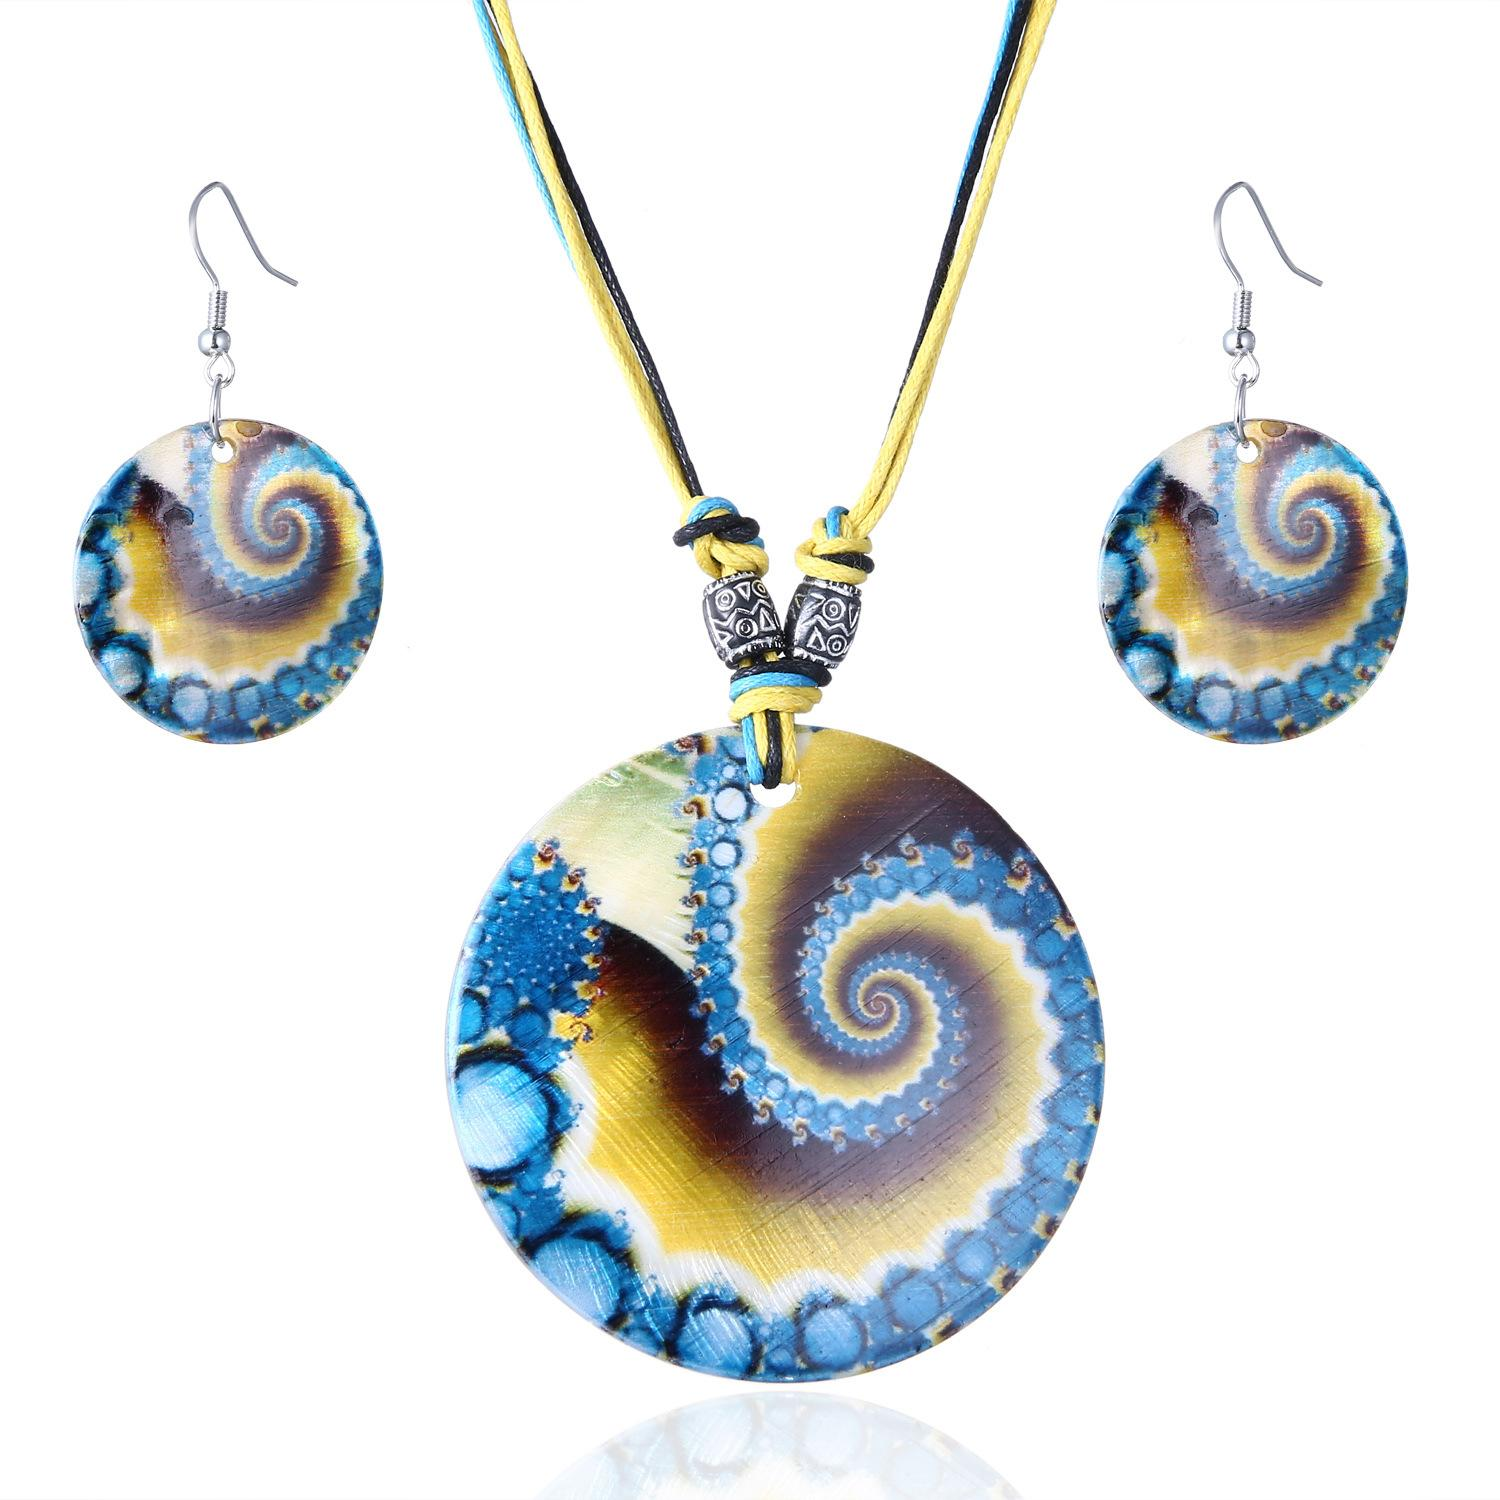 2018 New Arrival Charming Painted Printed Shell Jewelry Set Fashion